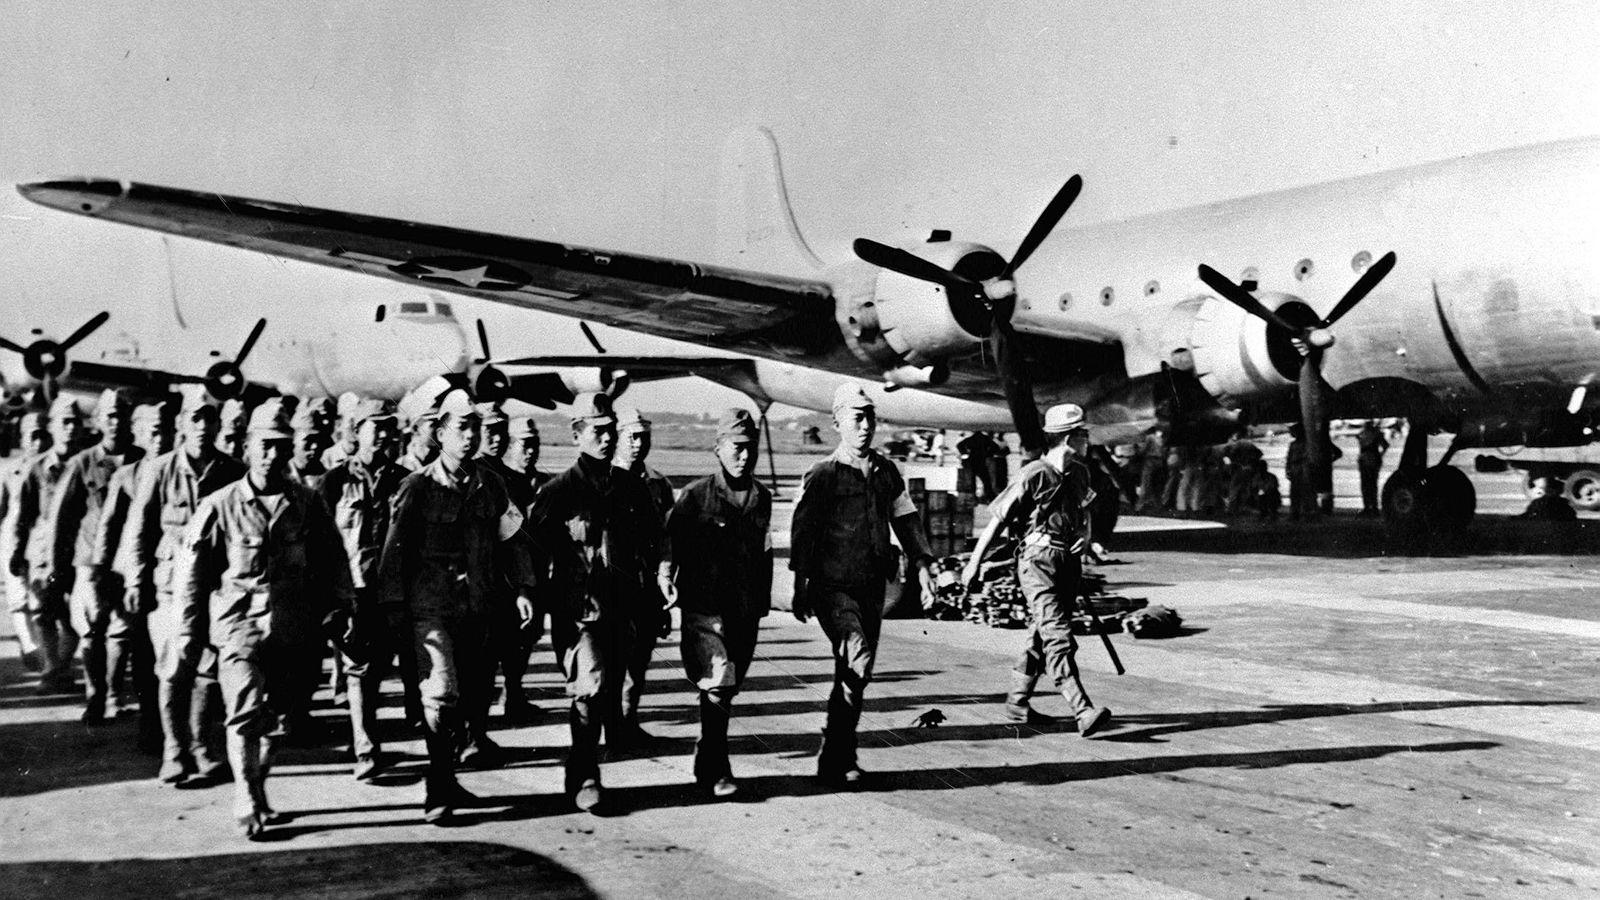 'If you don't kill, you will be killed': Remembering the fight against Japan in World War Two